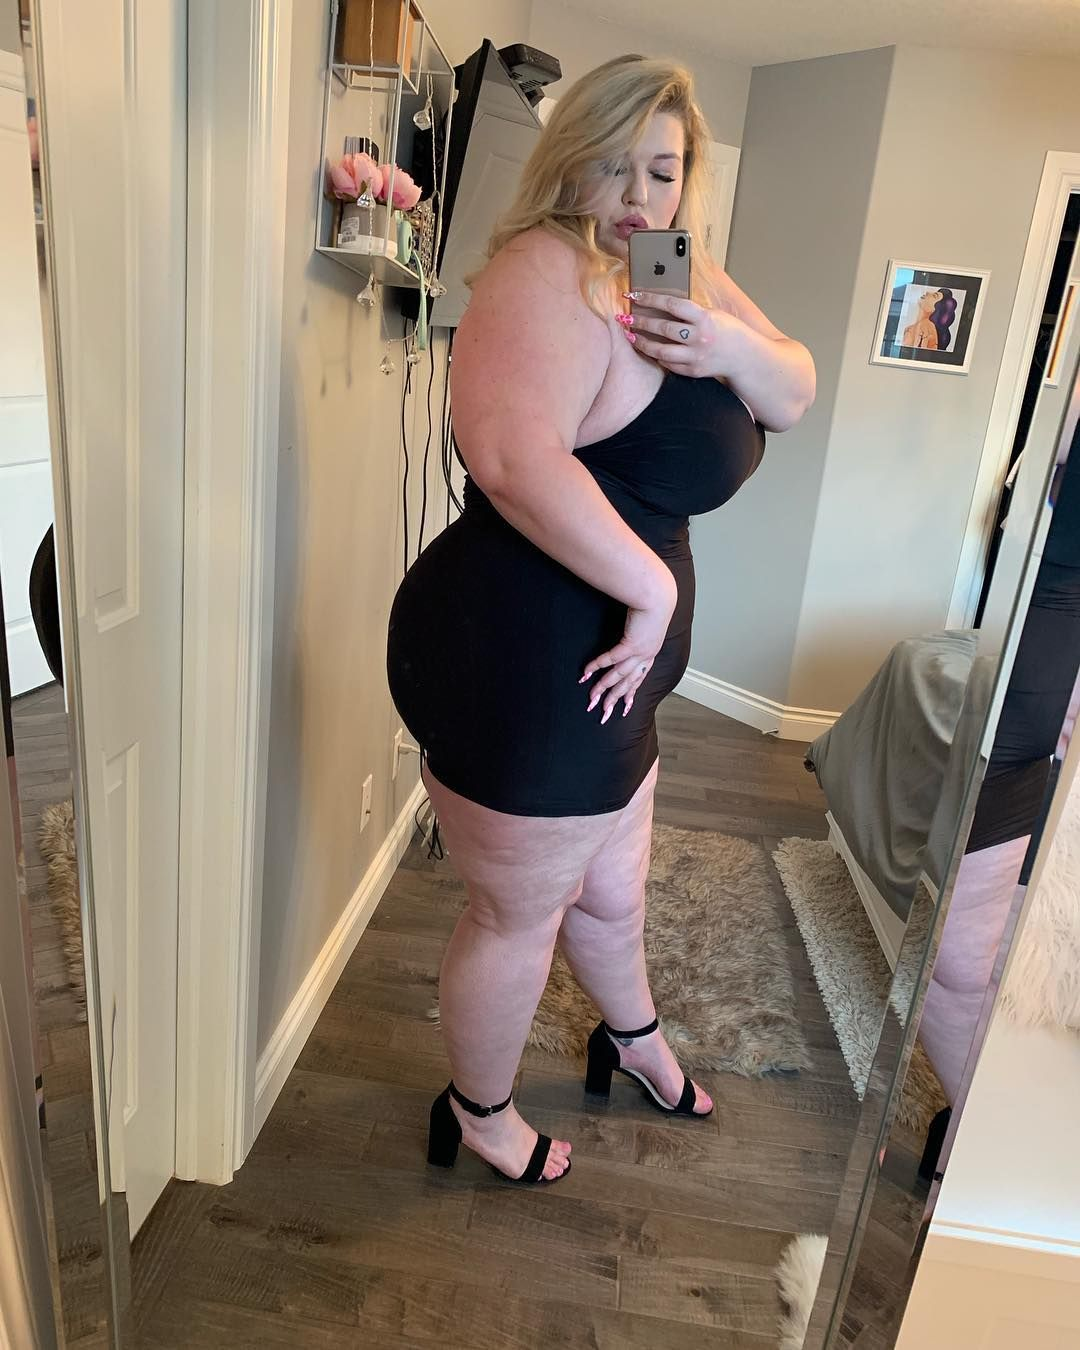 Lyndsay Patricia On Instagram Everybody Needs An Lbd And This Fashionnovacurve Makes Me Look Damn Good  F F  A F F  A F F  A Vbo